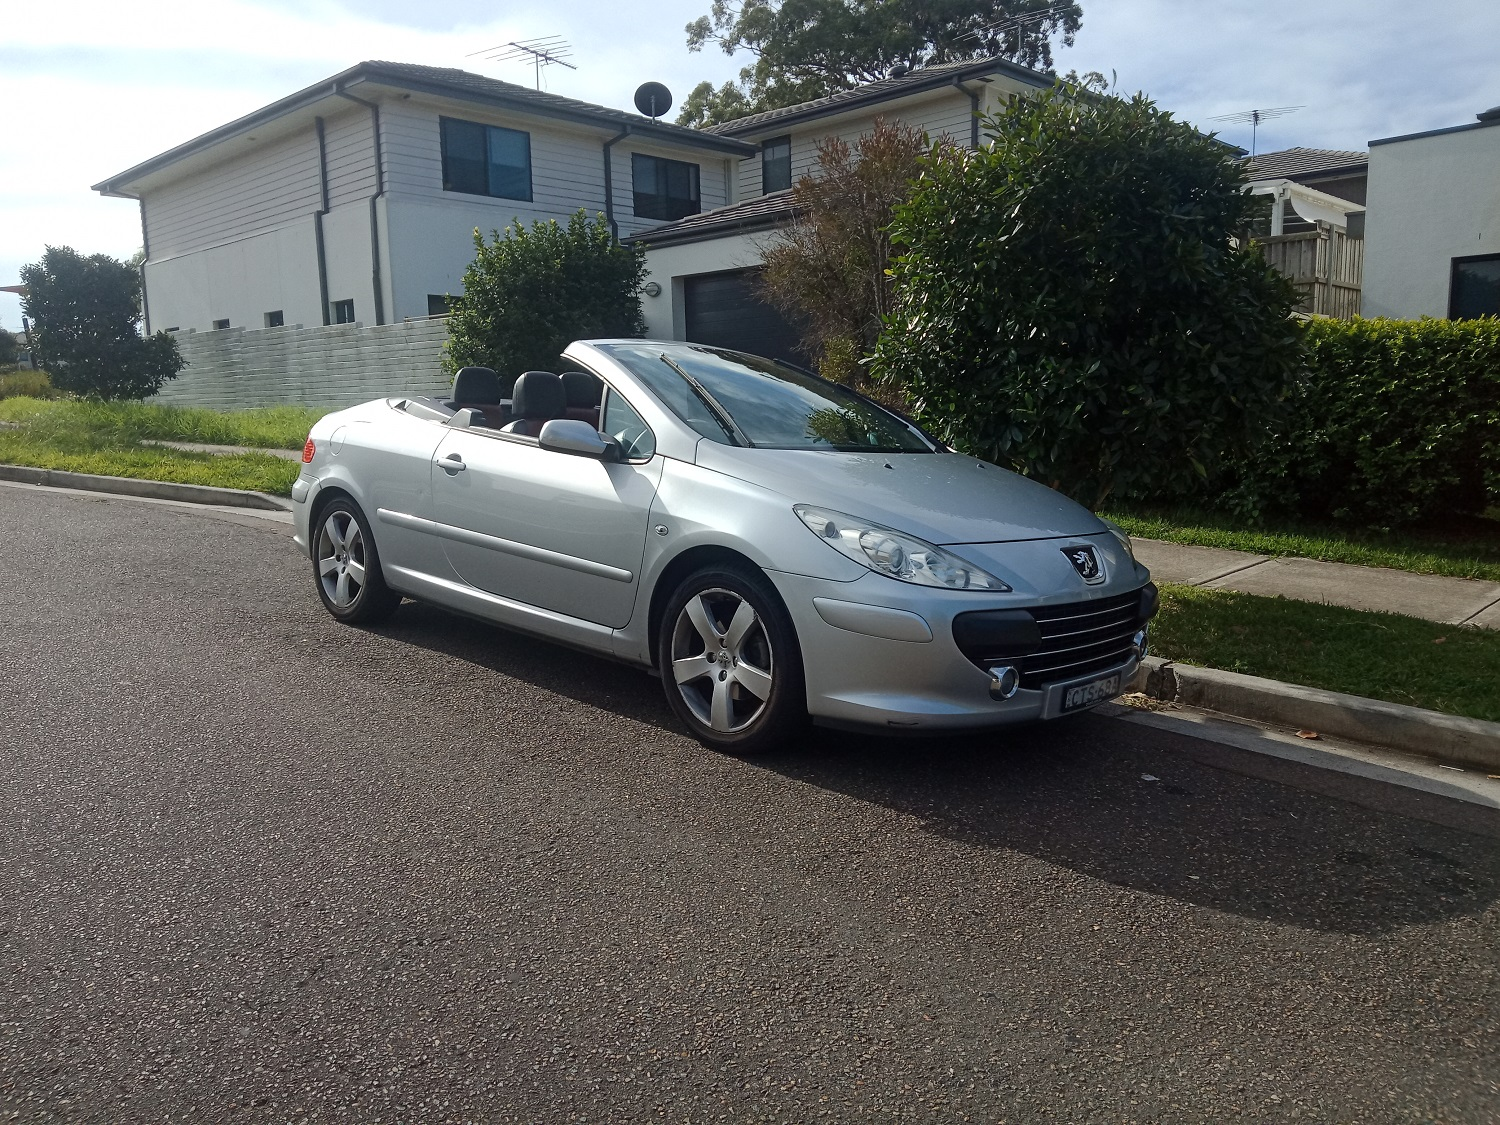 Picture of Damian's 2009 Peugeot 307CC Dynamic